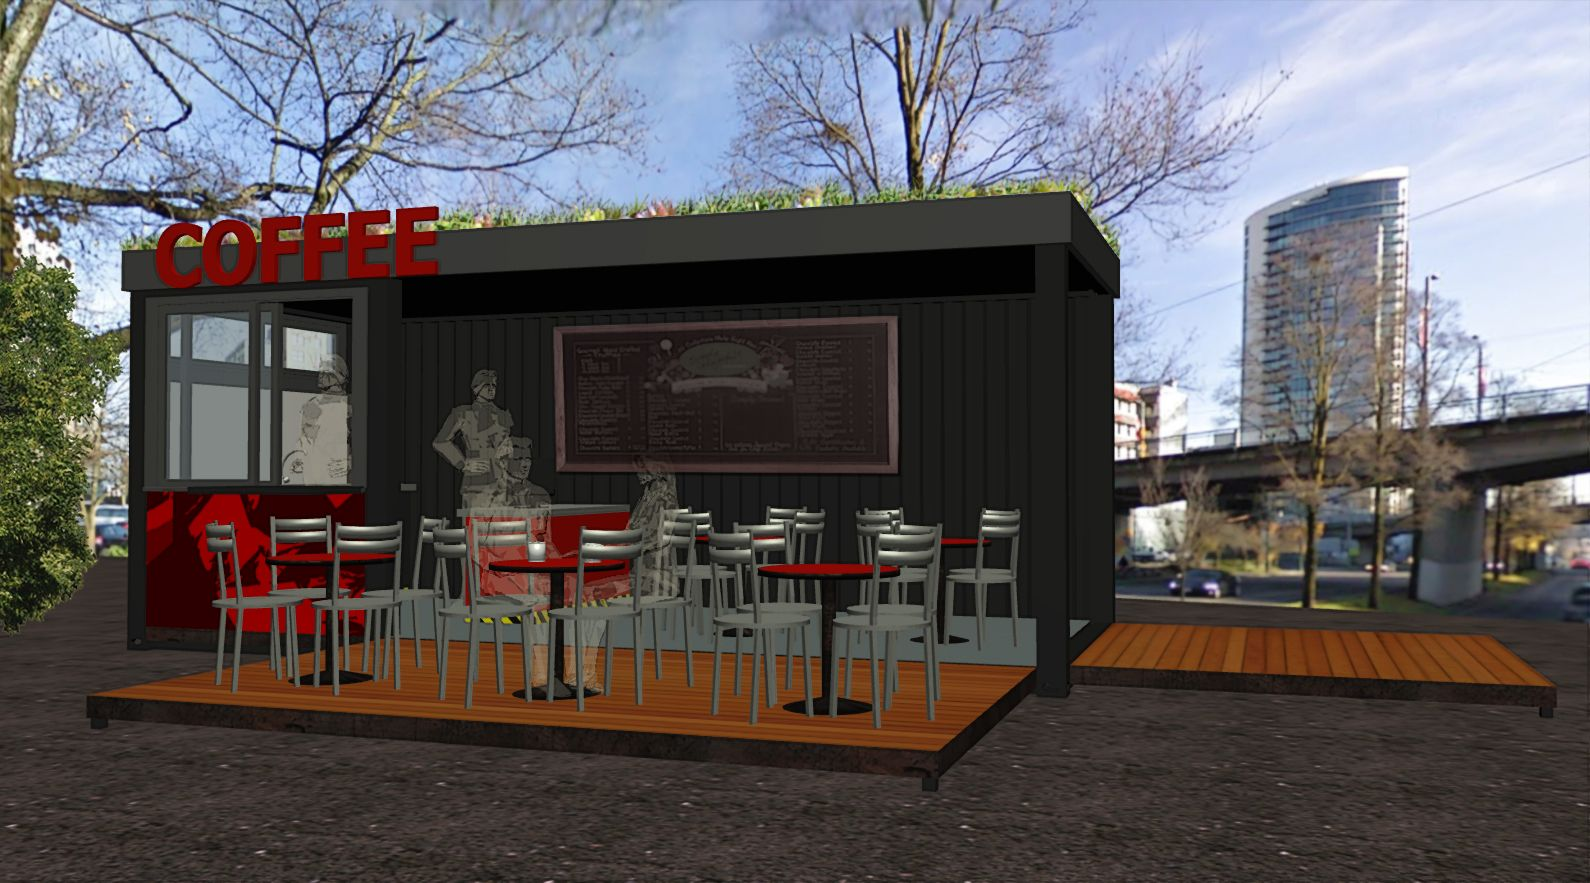 Container used for a coffee house concept this is the